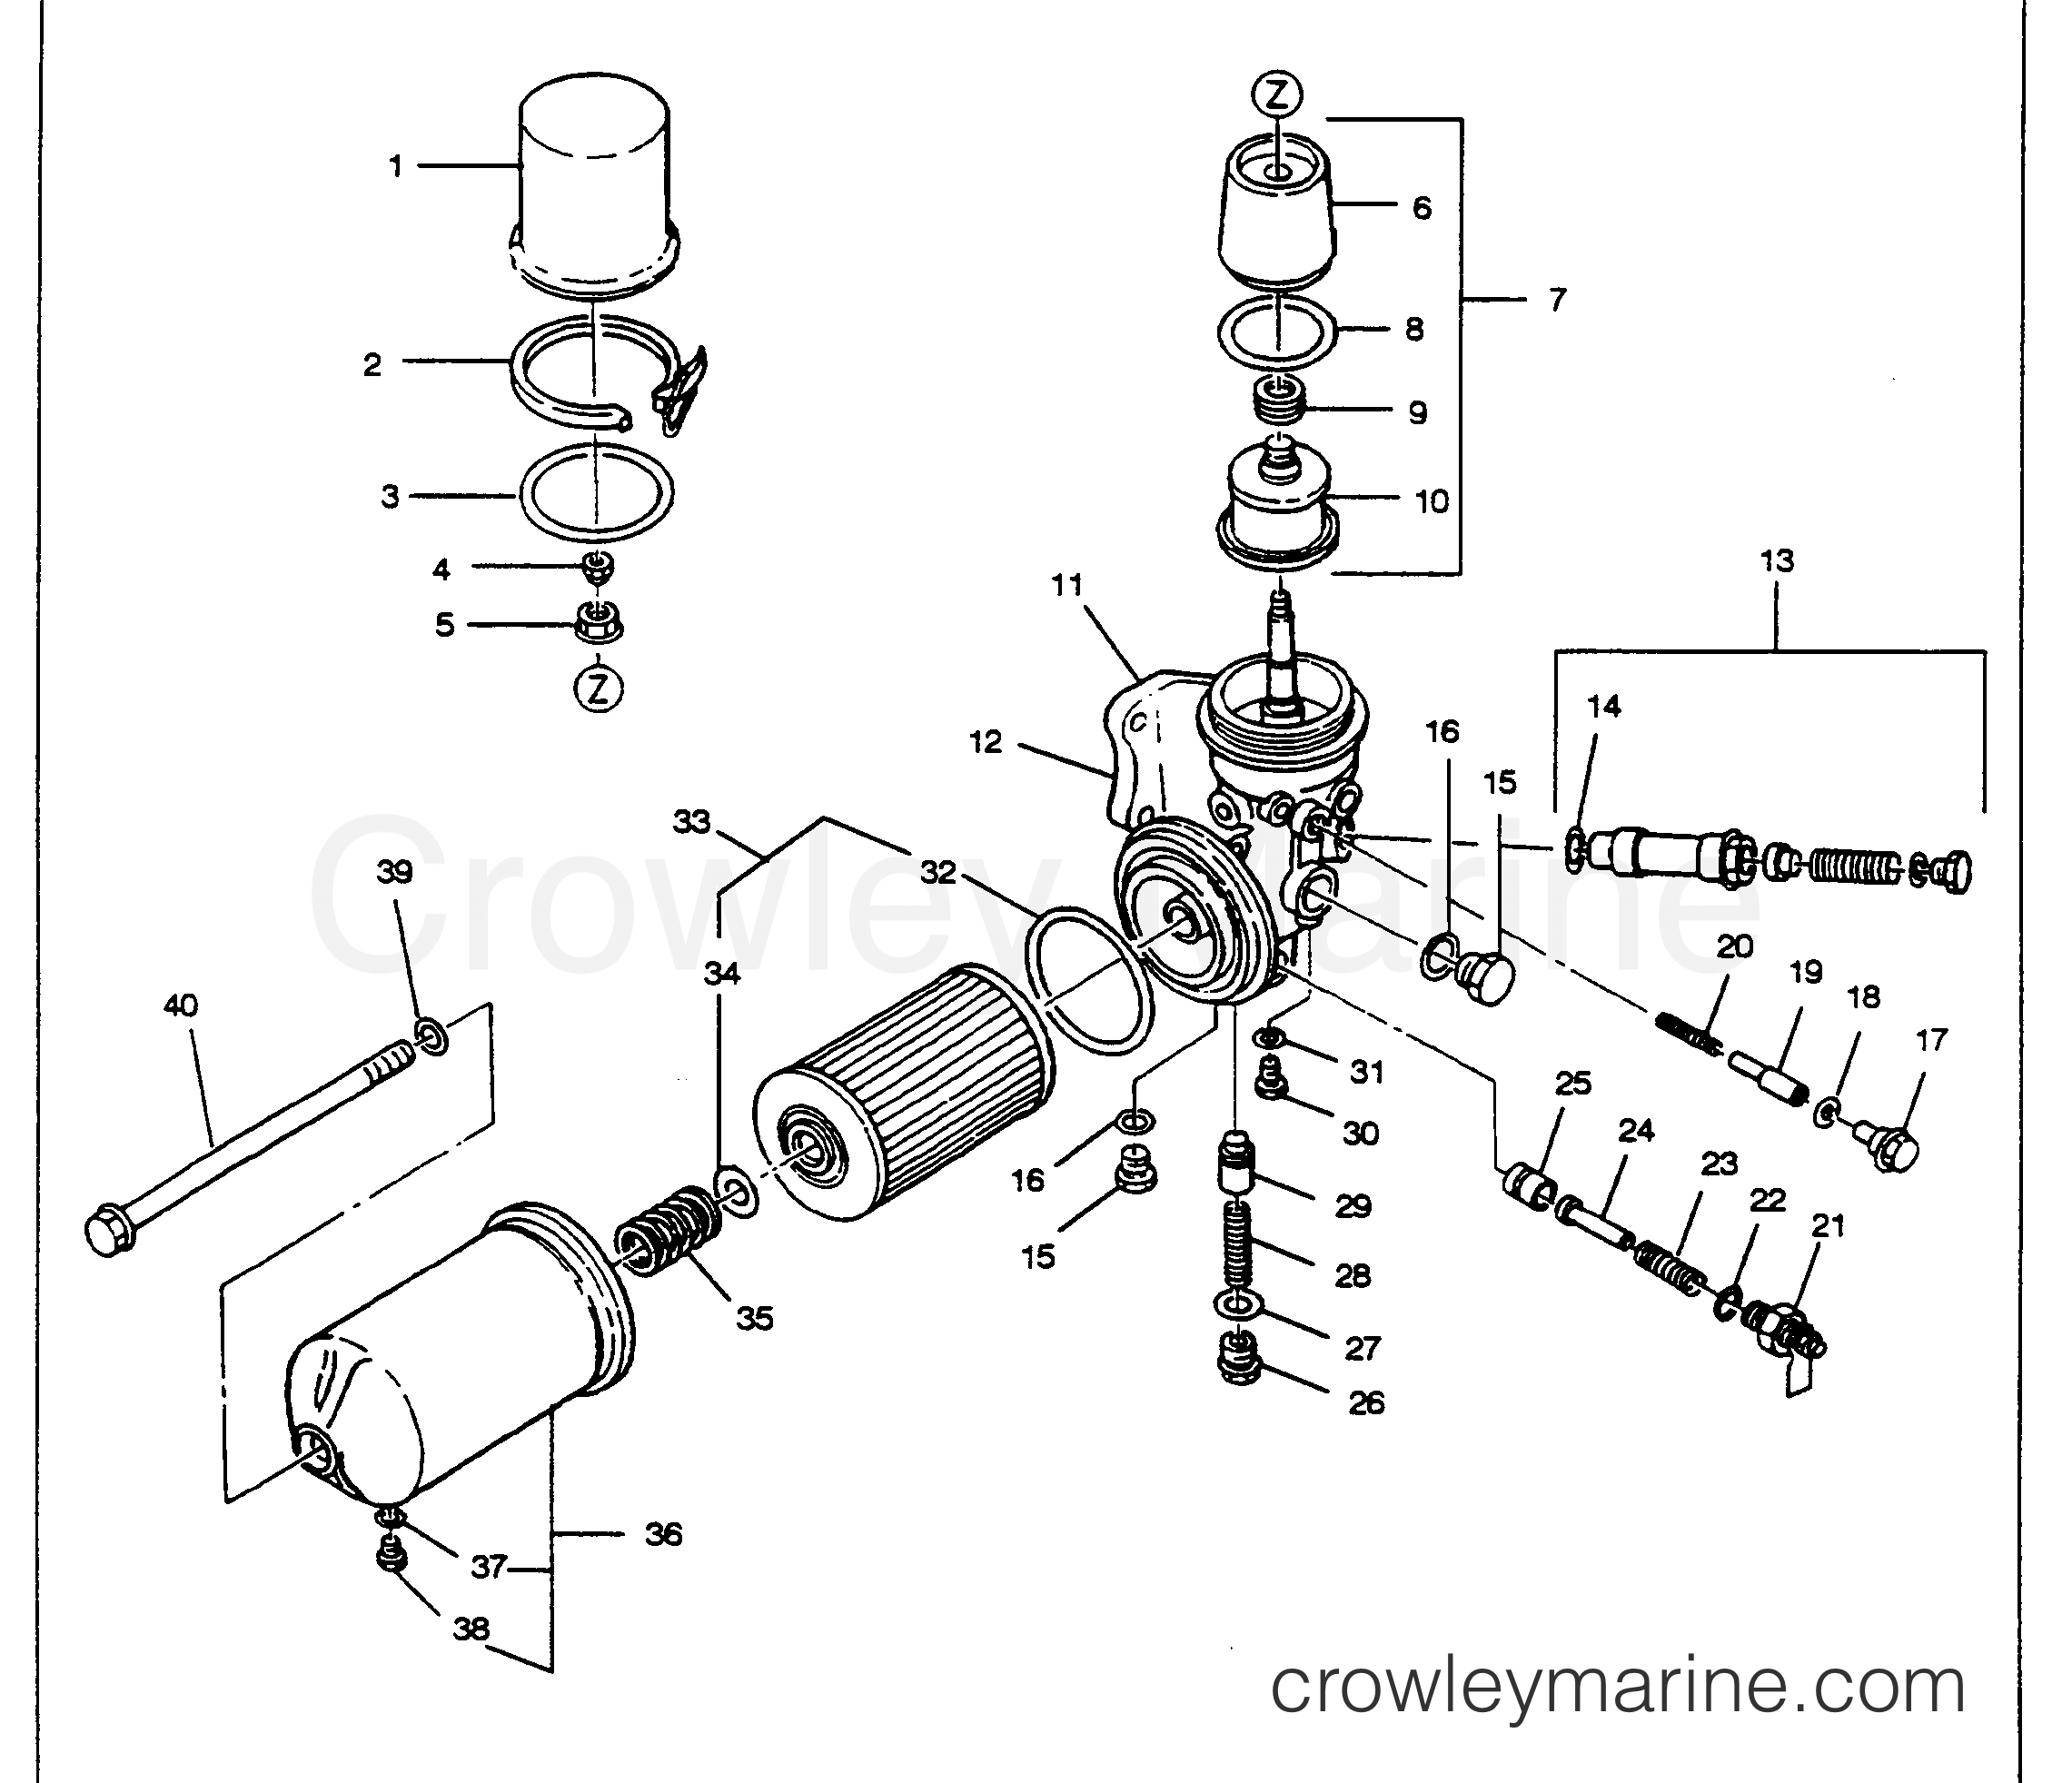 Oil Filter Assembly Figure 1 E3